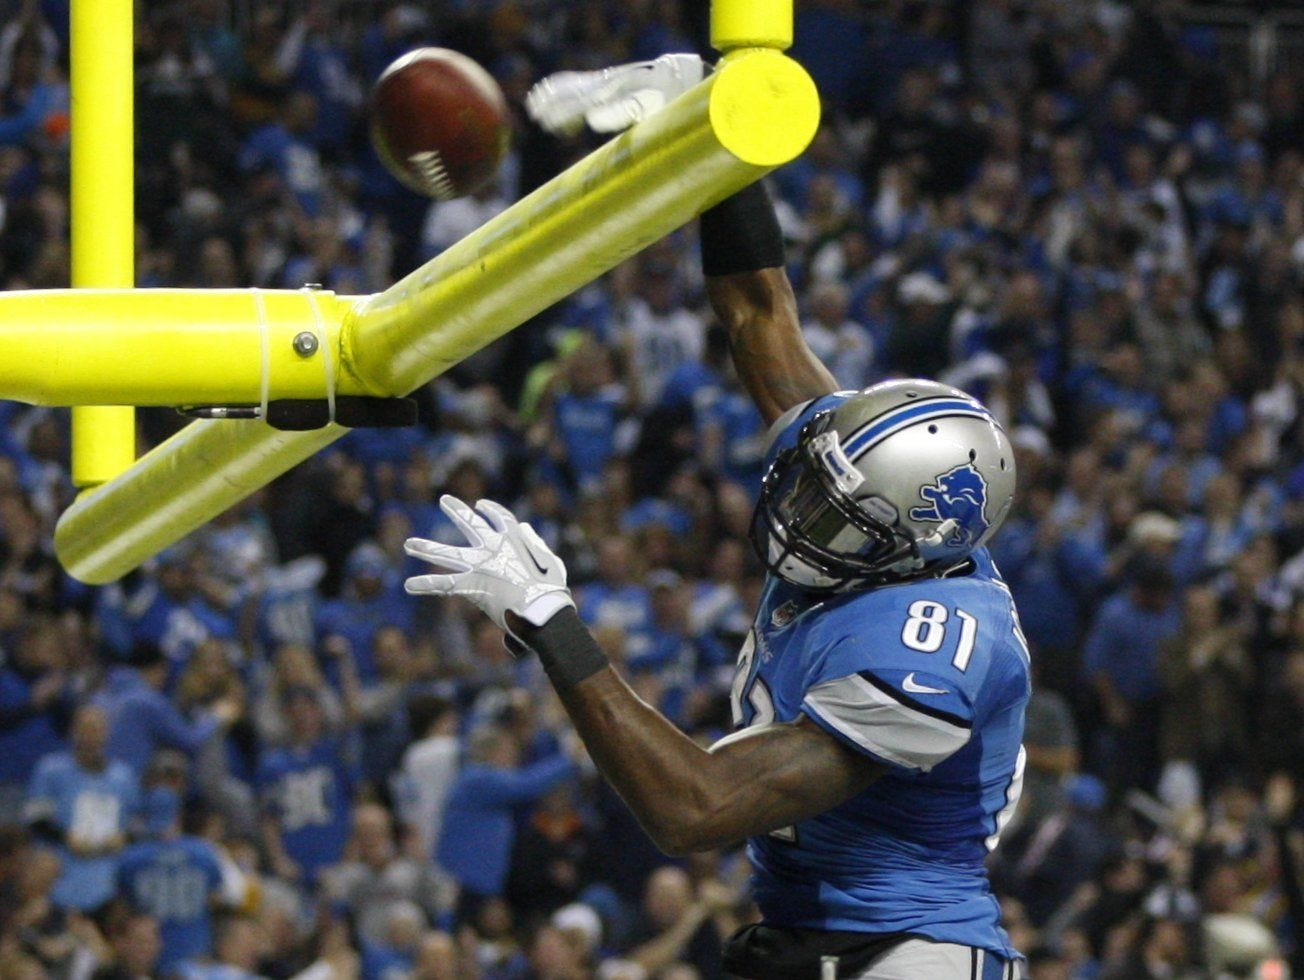 Calvin Johnson dips the ball over the goal post after landing in the third quarter against the Green Bay Packers in Detroit on November 28, 2013.